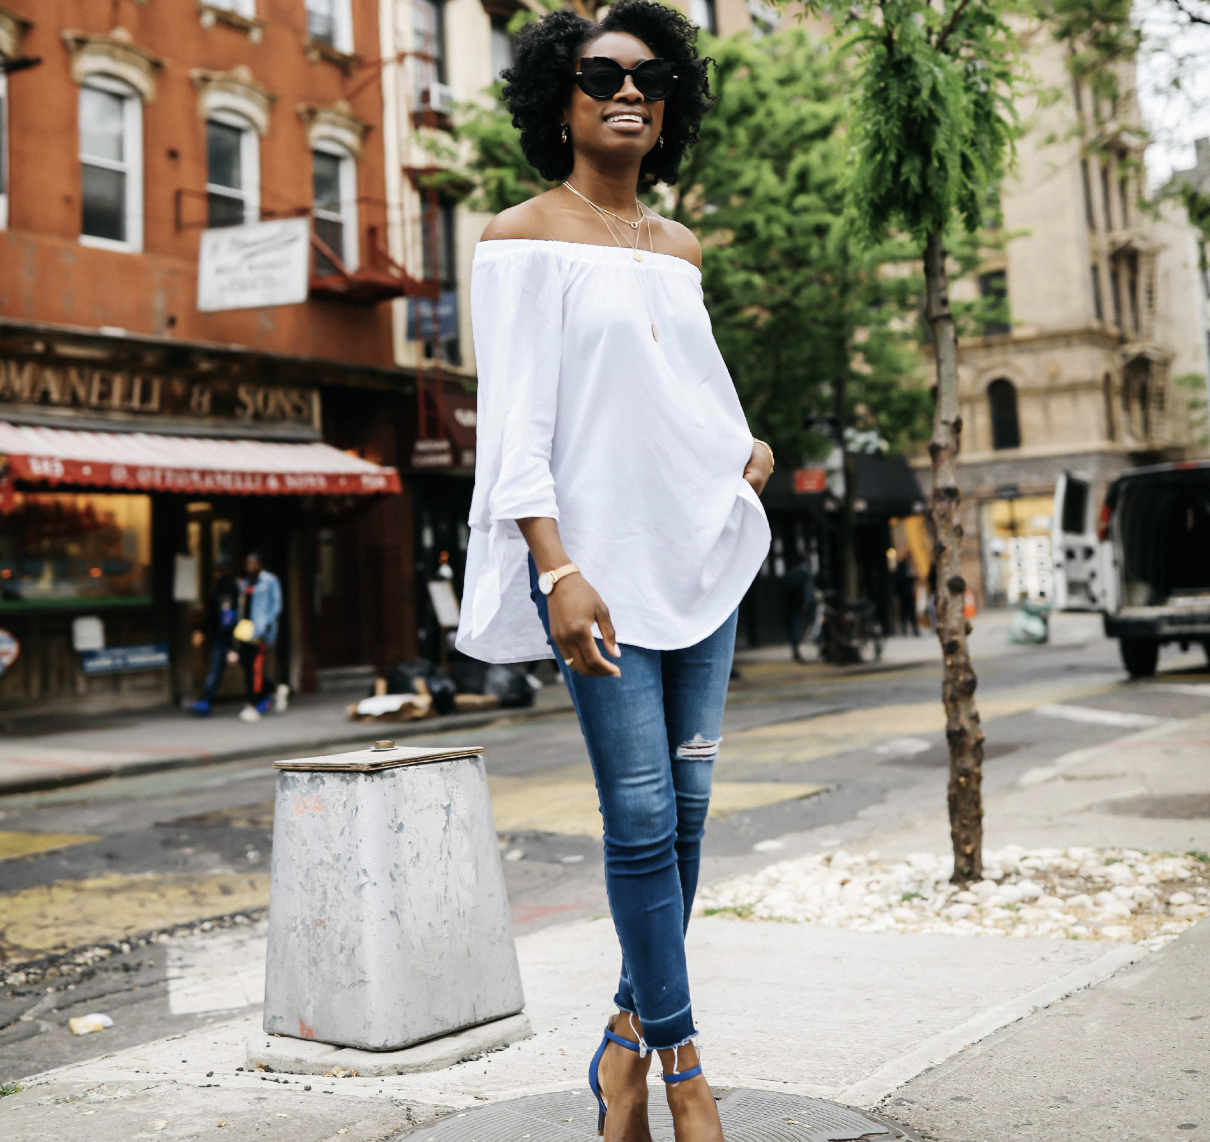 Model wearing flowy top with three-quarter sleeves in white with jeans and heels